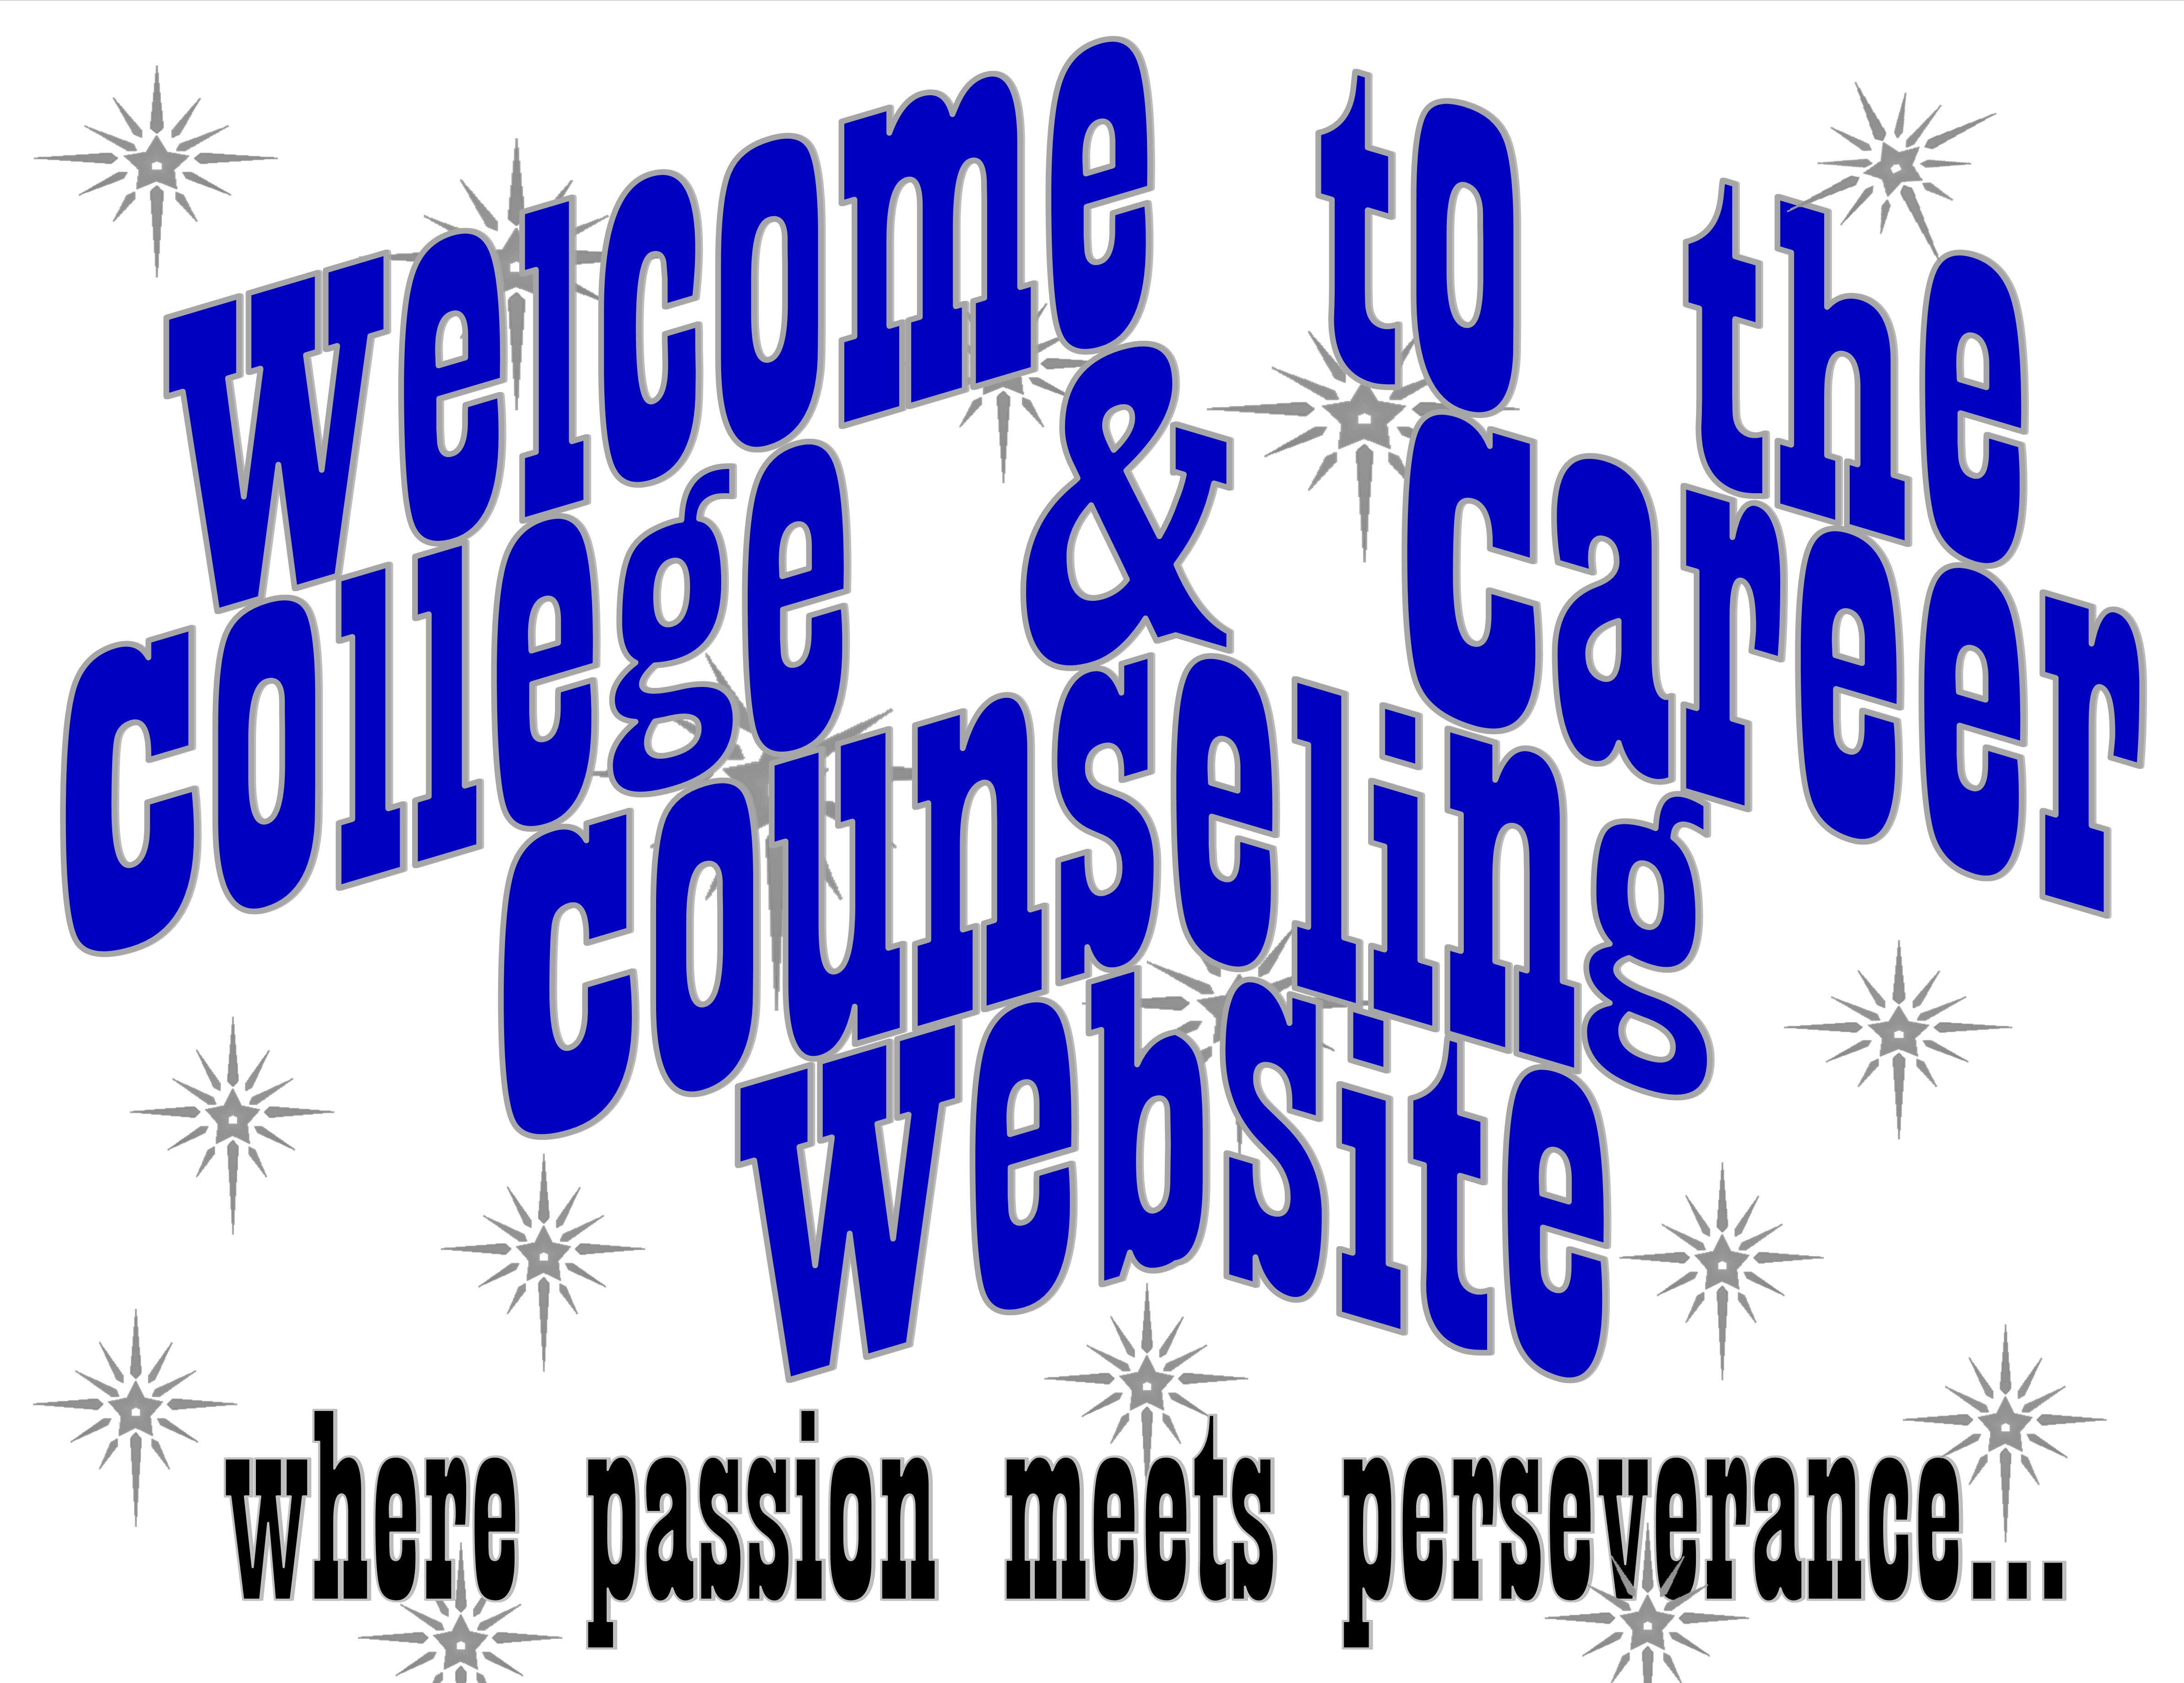 College and career counselling